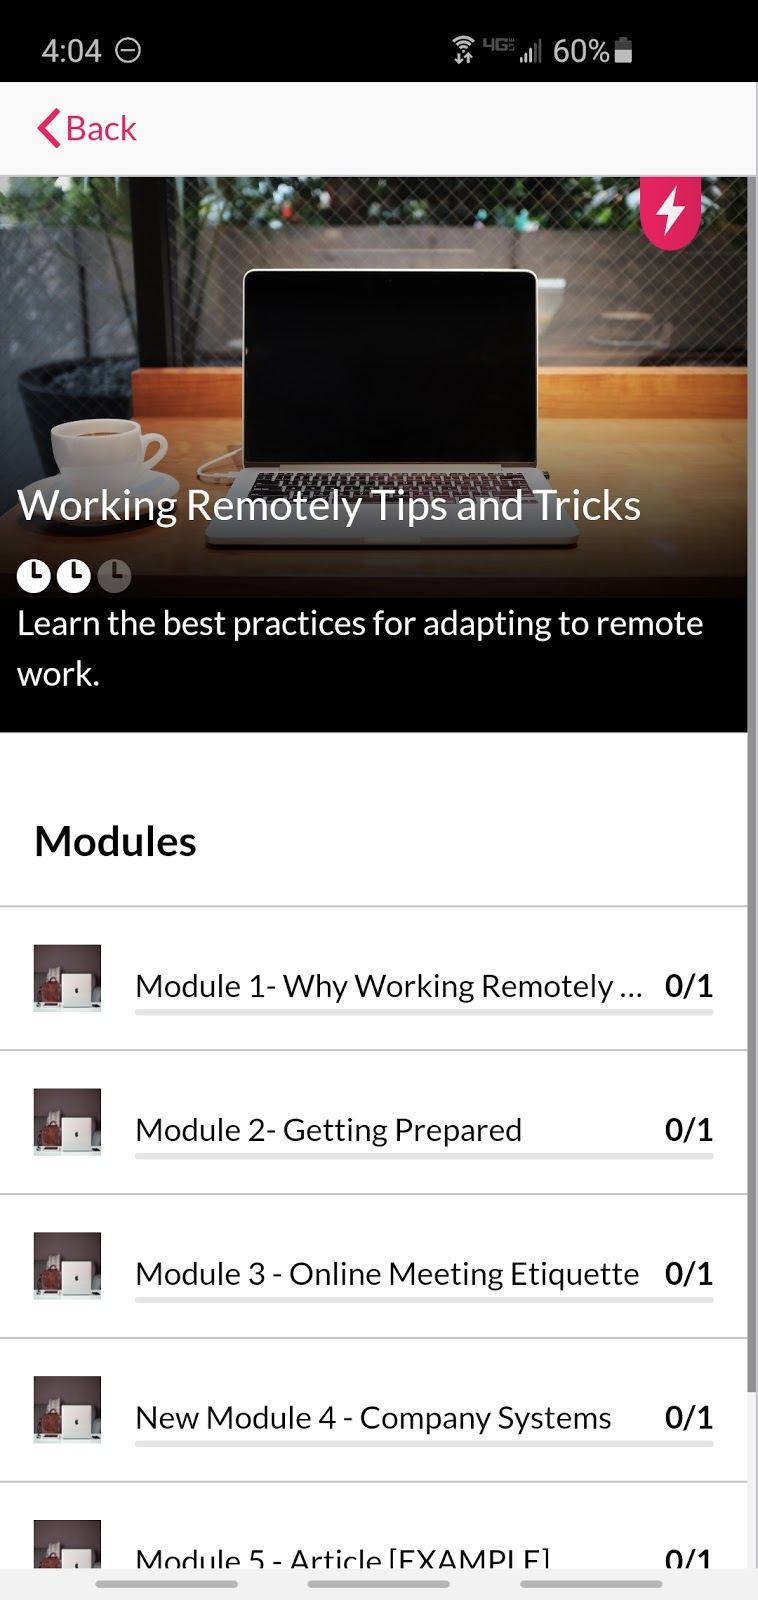 Working remotely tips and tricks: Learn the best practices for adapting to remote work.